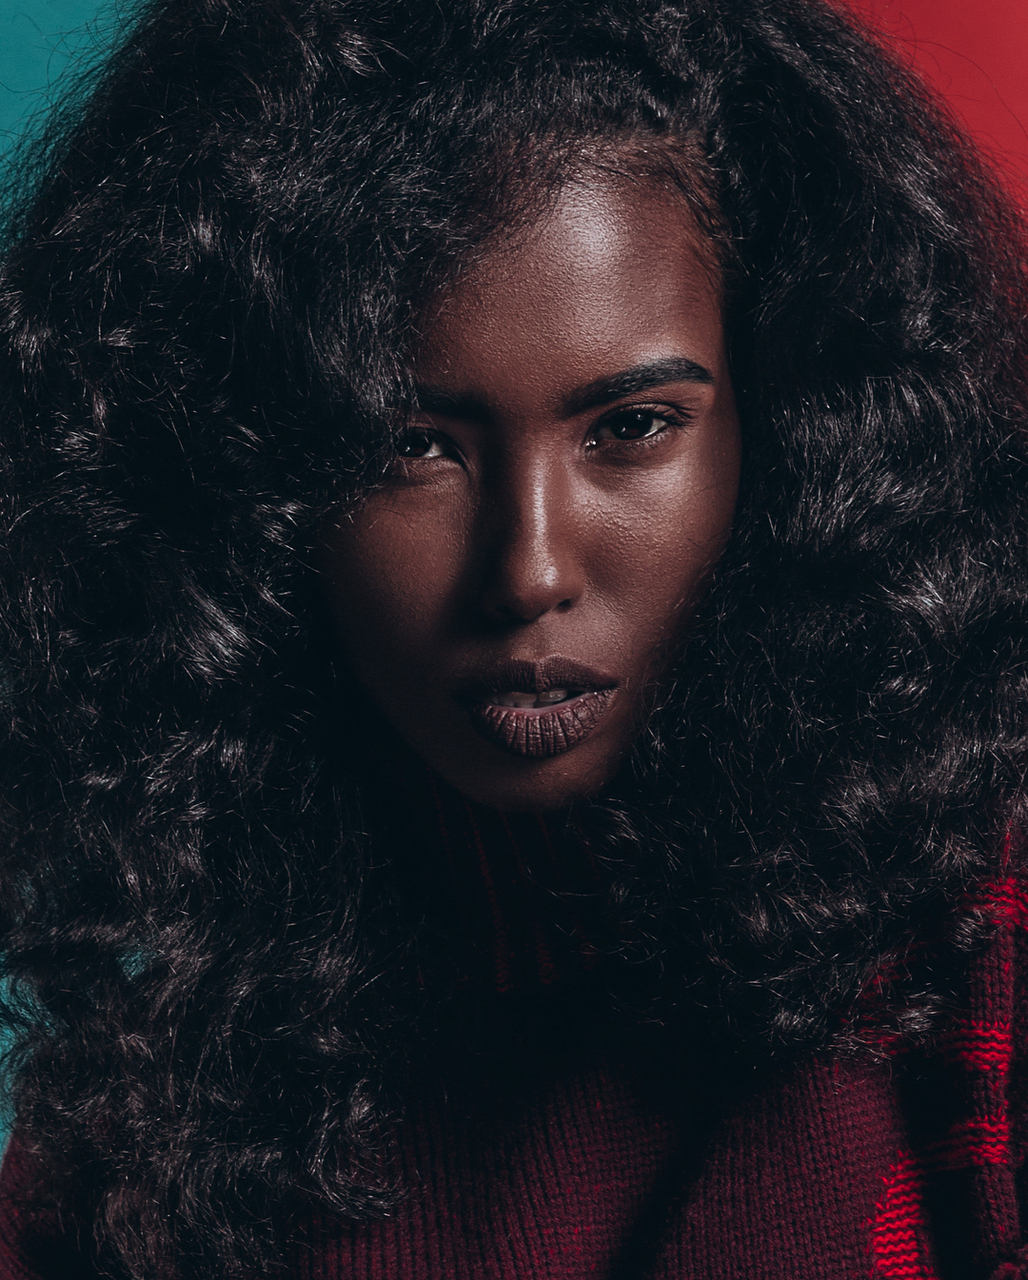 photography, texture, dark skin and curls